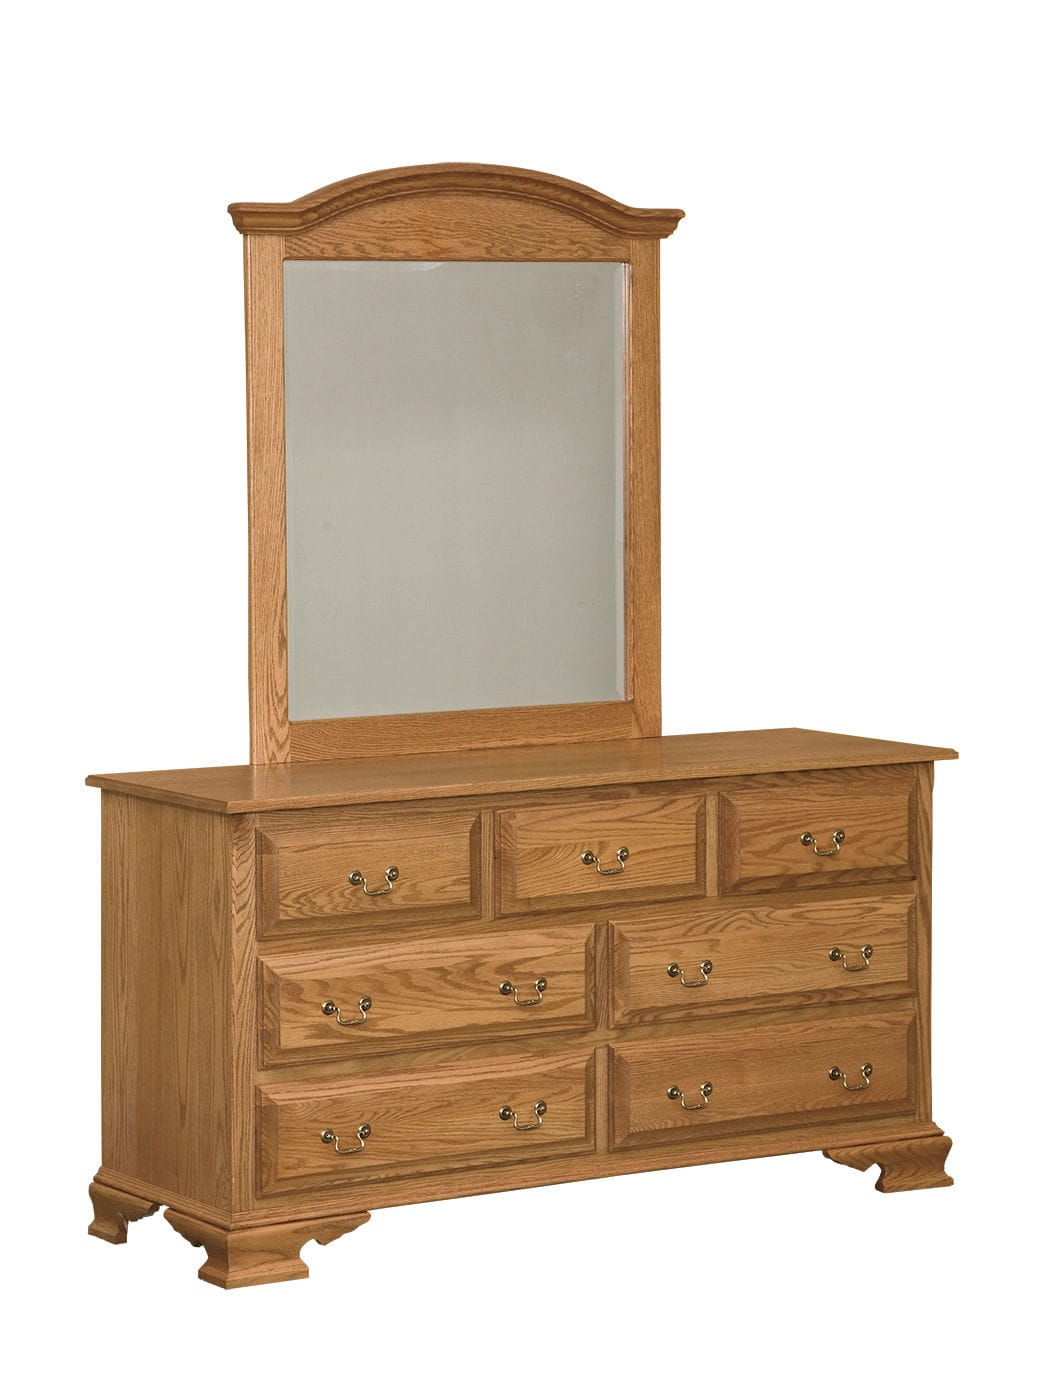 Photo of: MEW Lancaster Dresser and Mirror